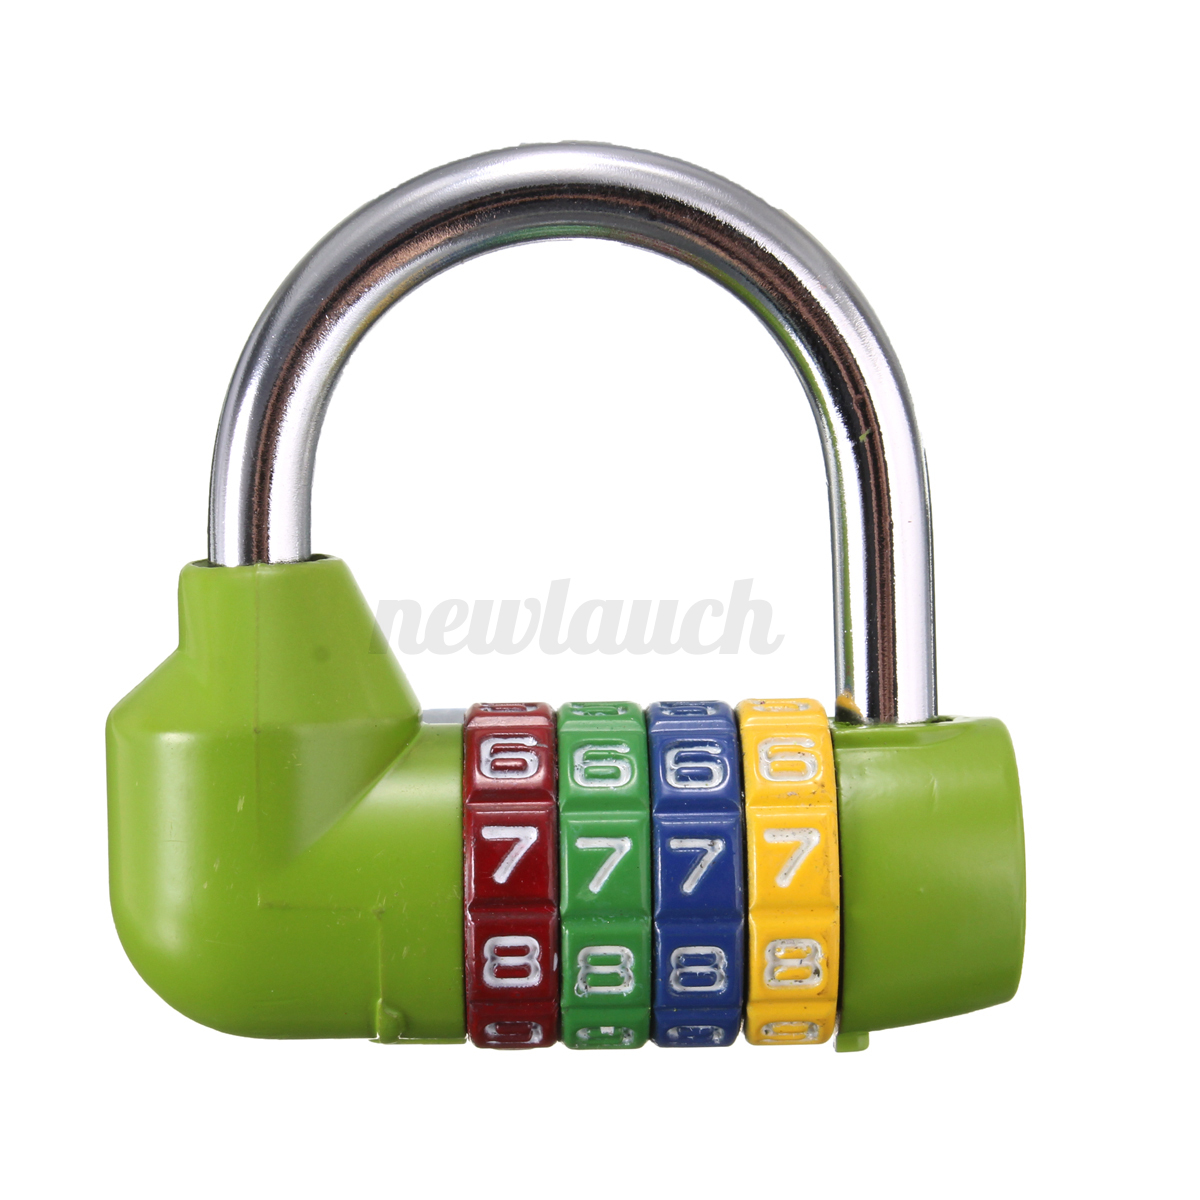 combination lock 8 digits how to open luggage